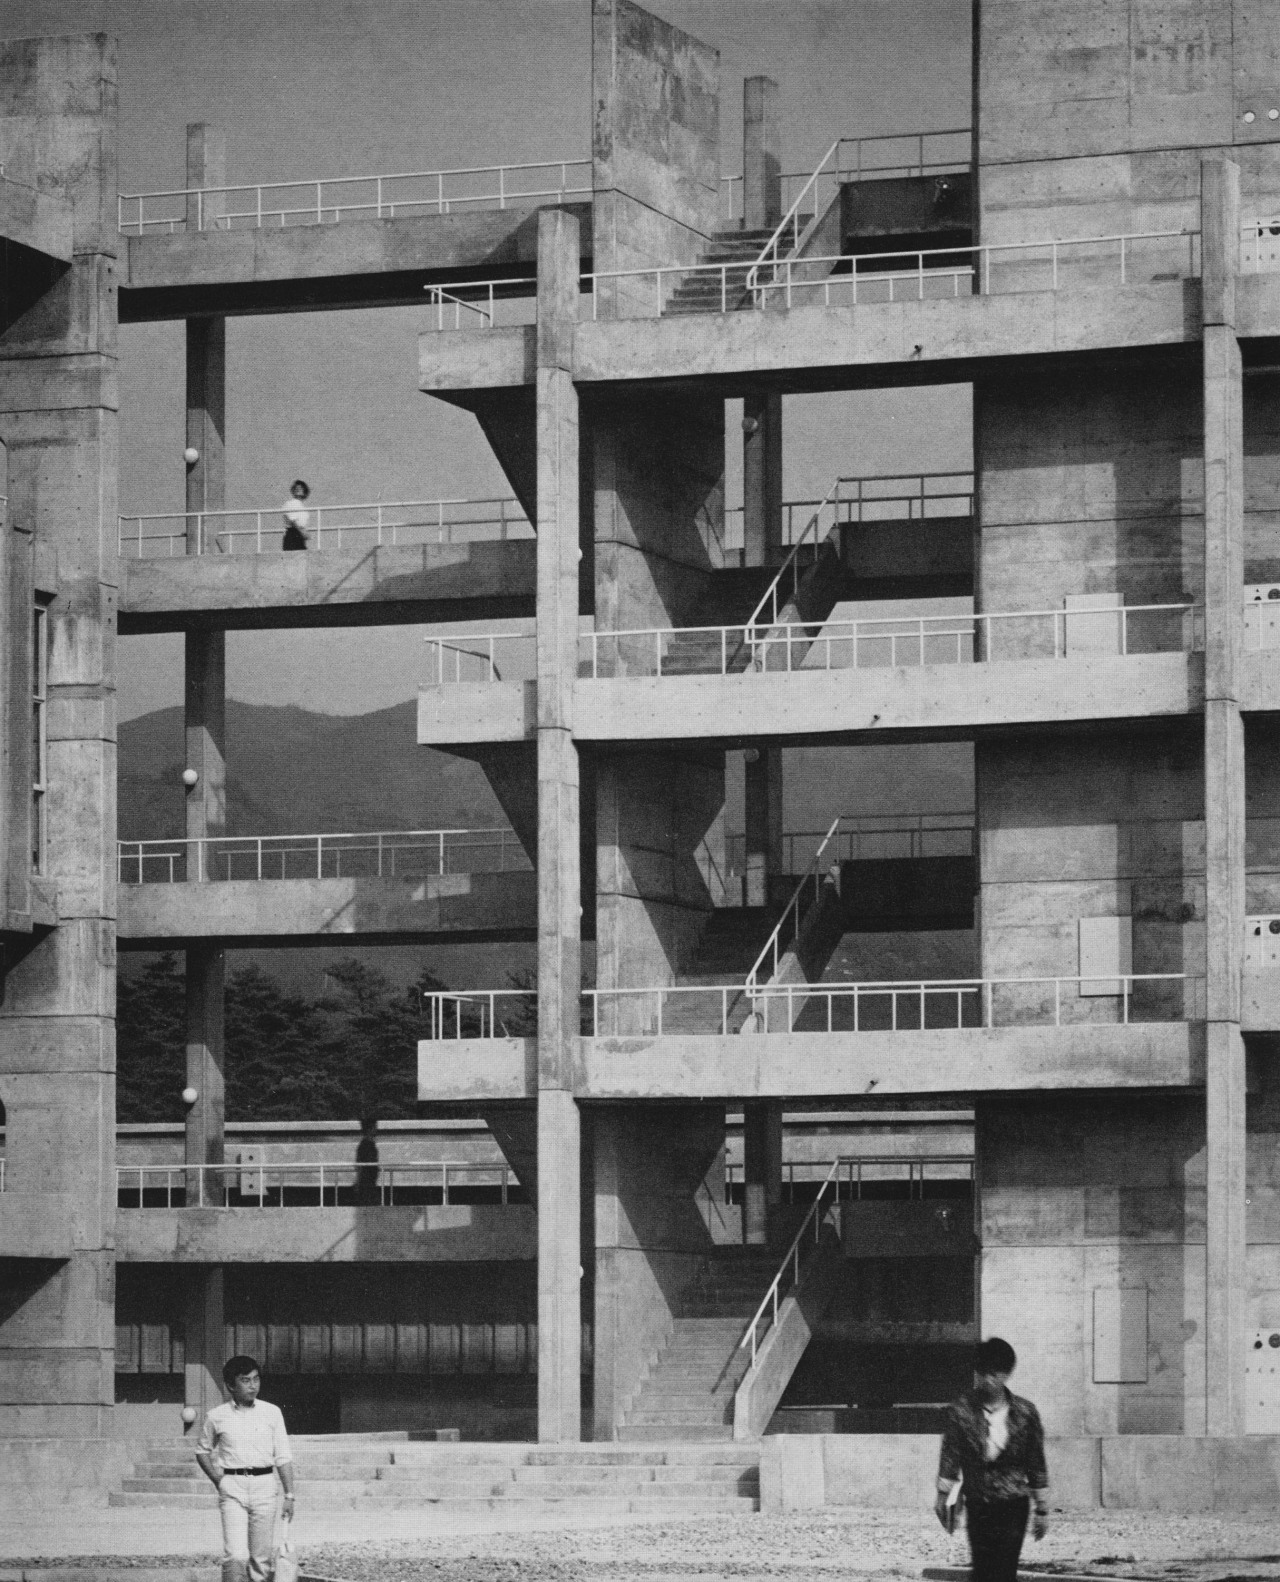 Osaka University of the Arts, Japan, 1965-67 (Daiichi Kobo Planning Group)